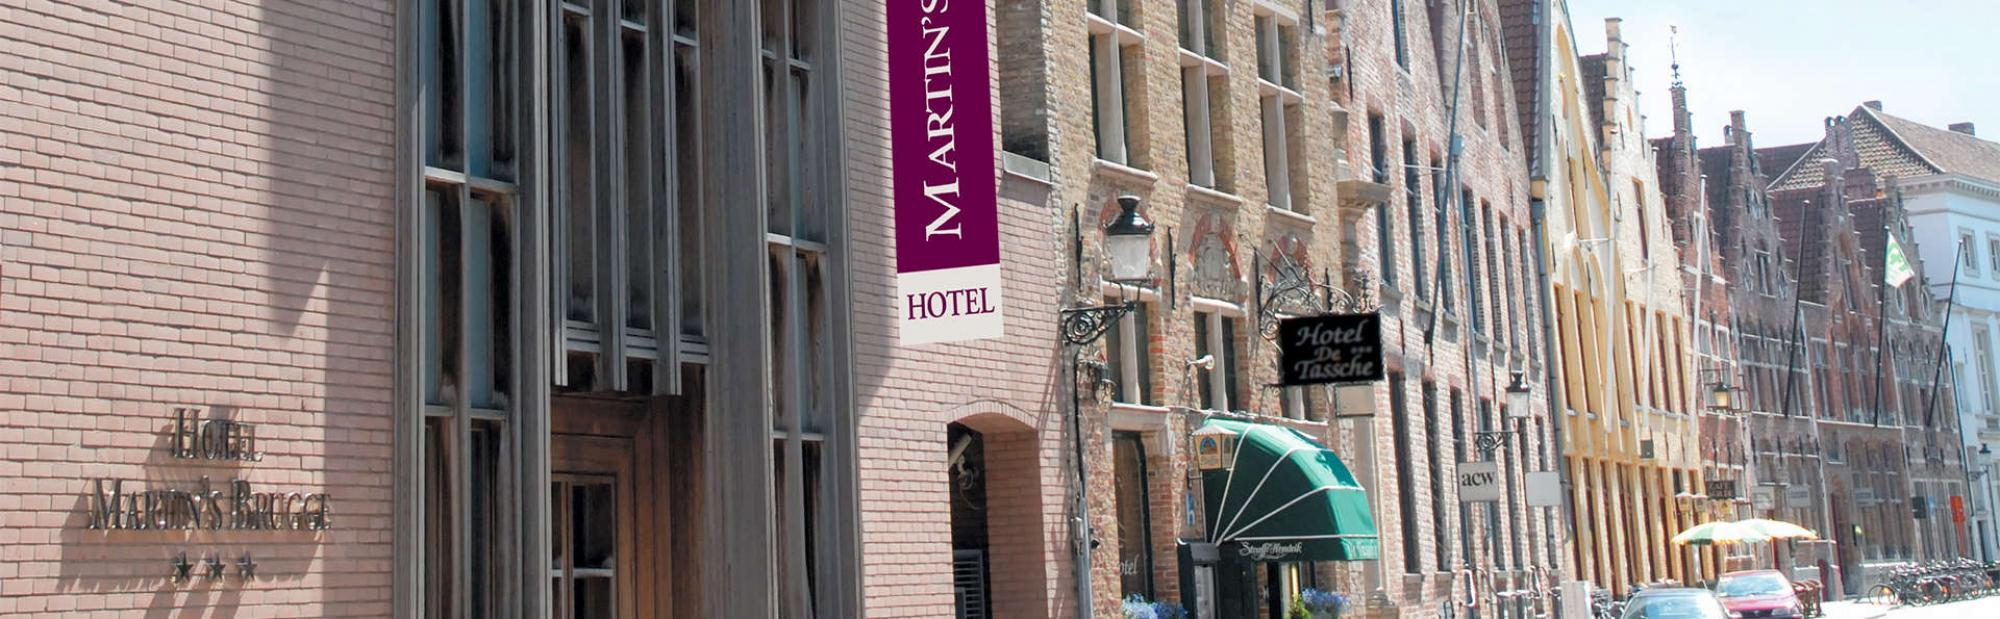 View Martins Brugge's beautiful hotel situated in impressive Bruges  Ypres.